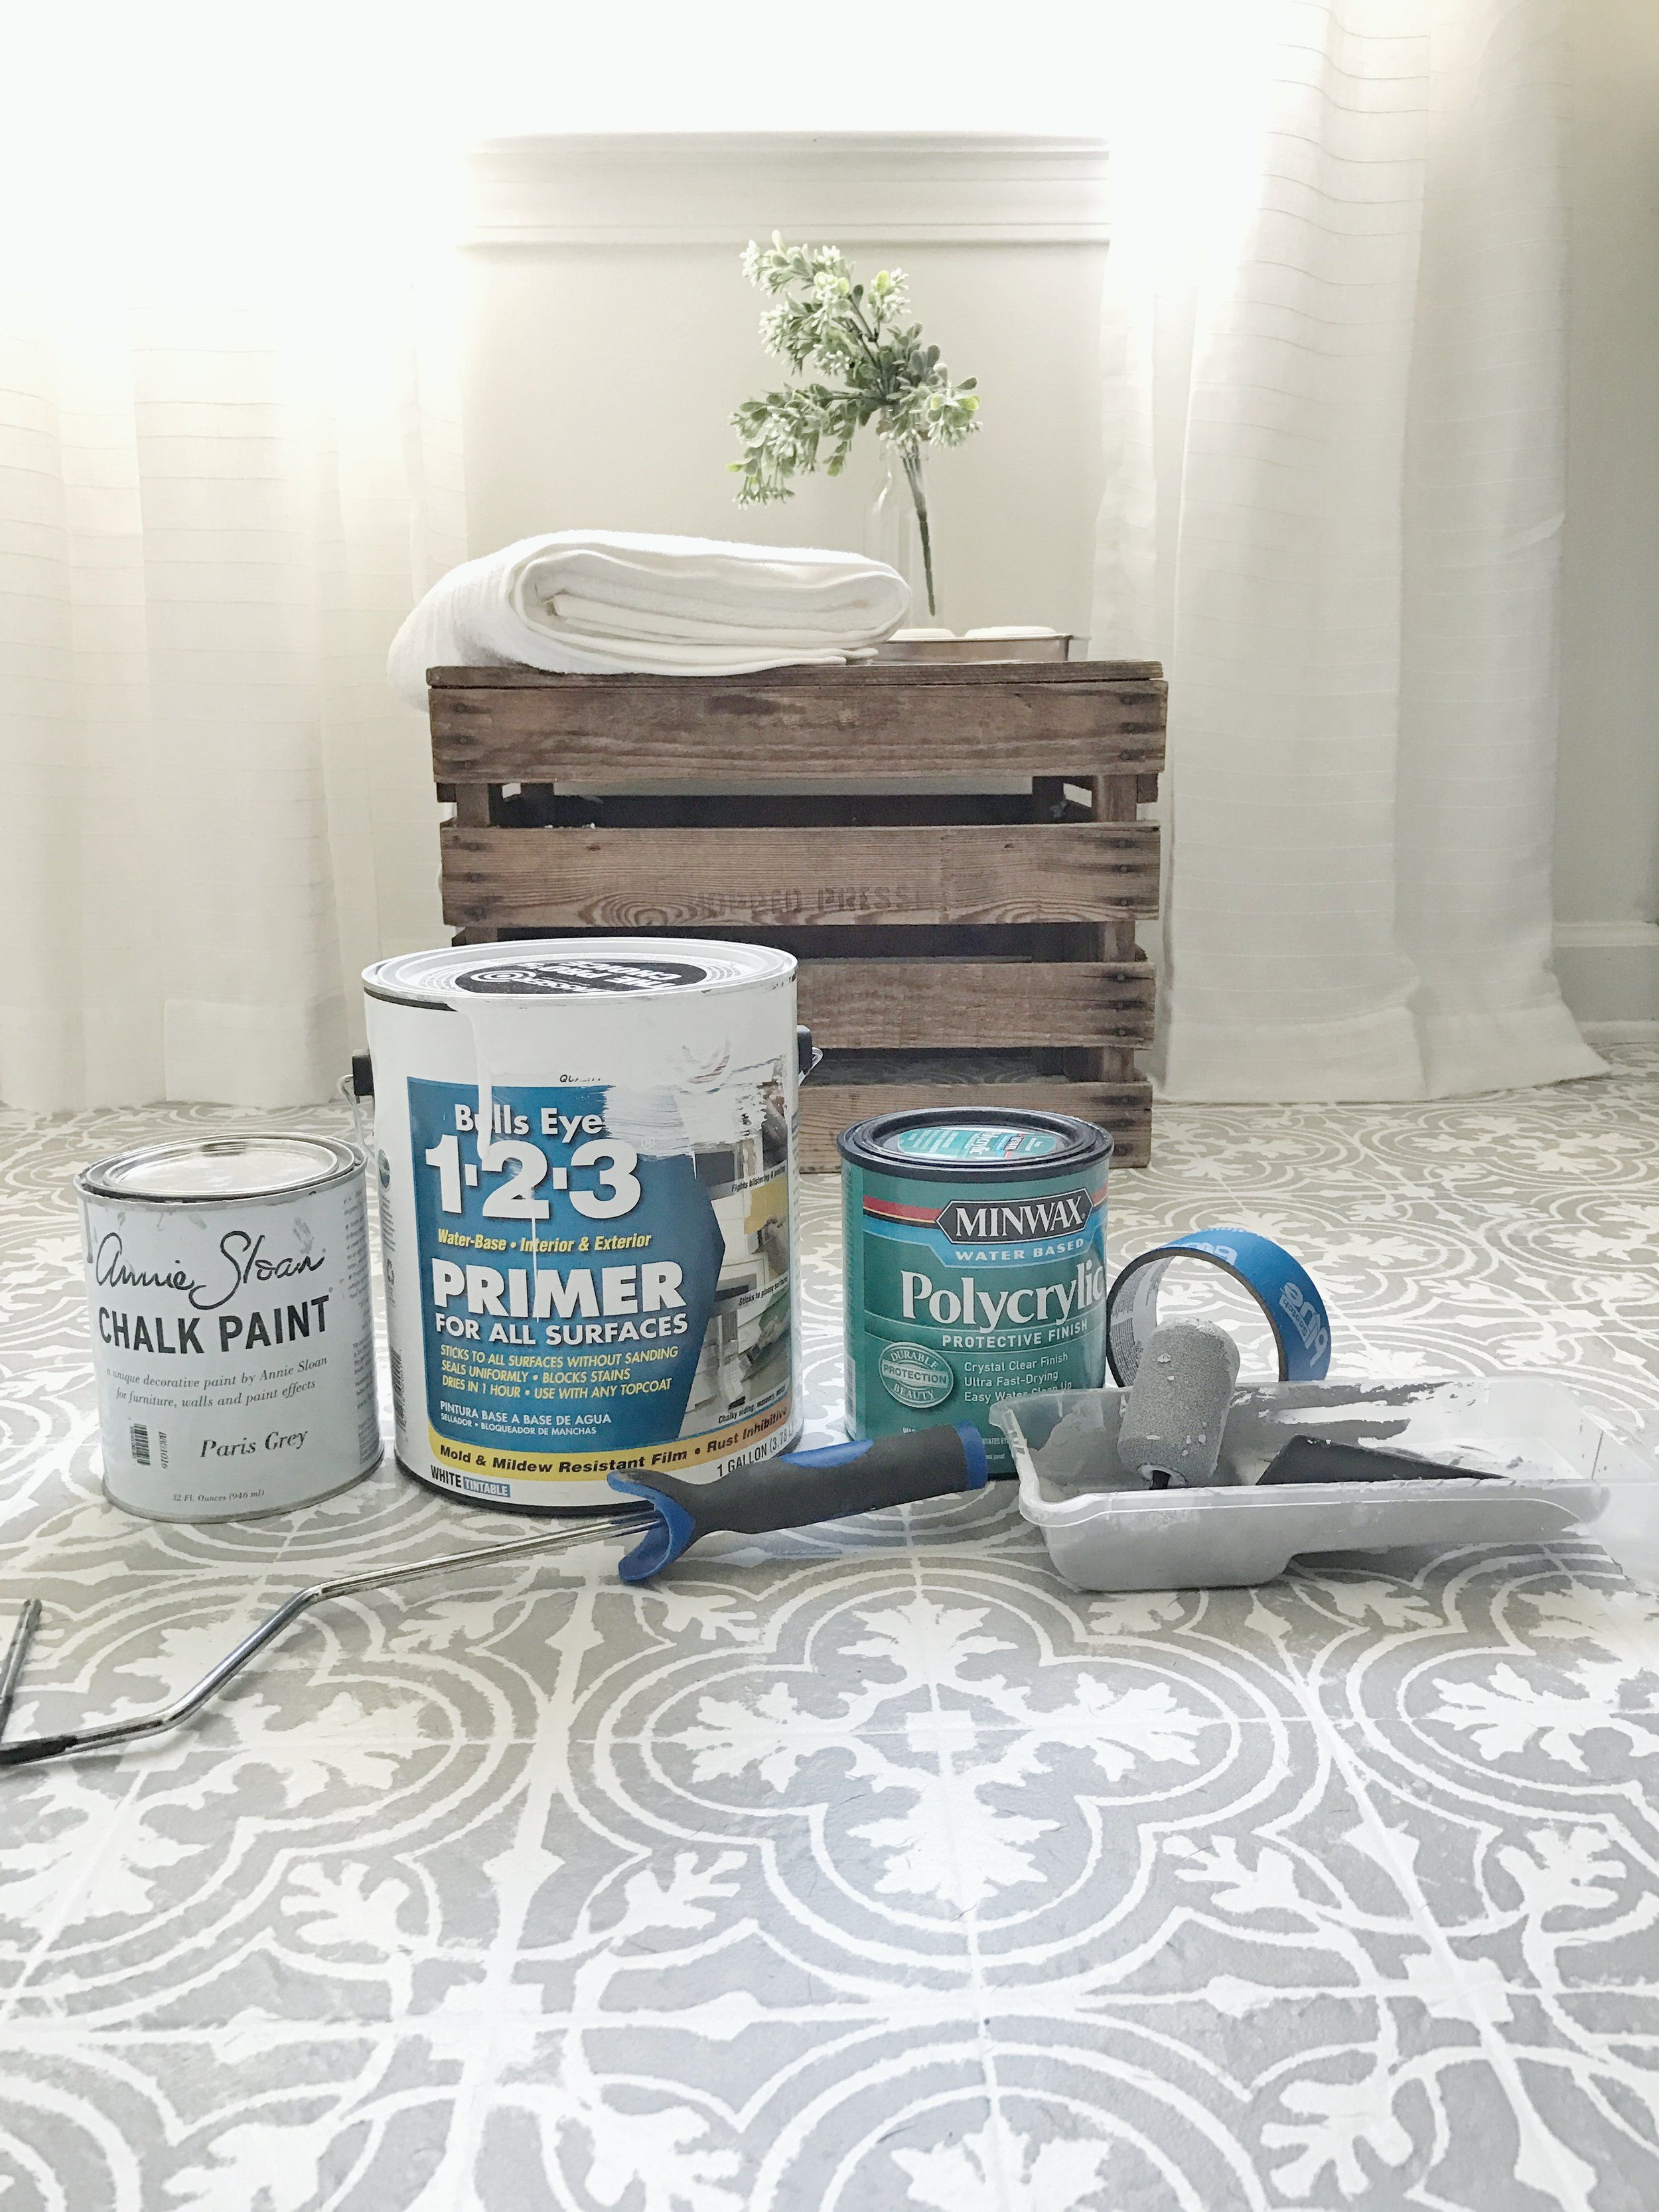 How to paint your linoleum or tile floors to look like patterned how to paint your linoleum or tile floors to look like patterned cement tiles full doublecrazyfo Choice Image